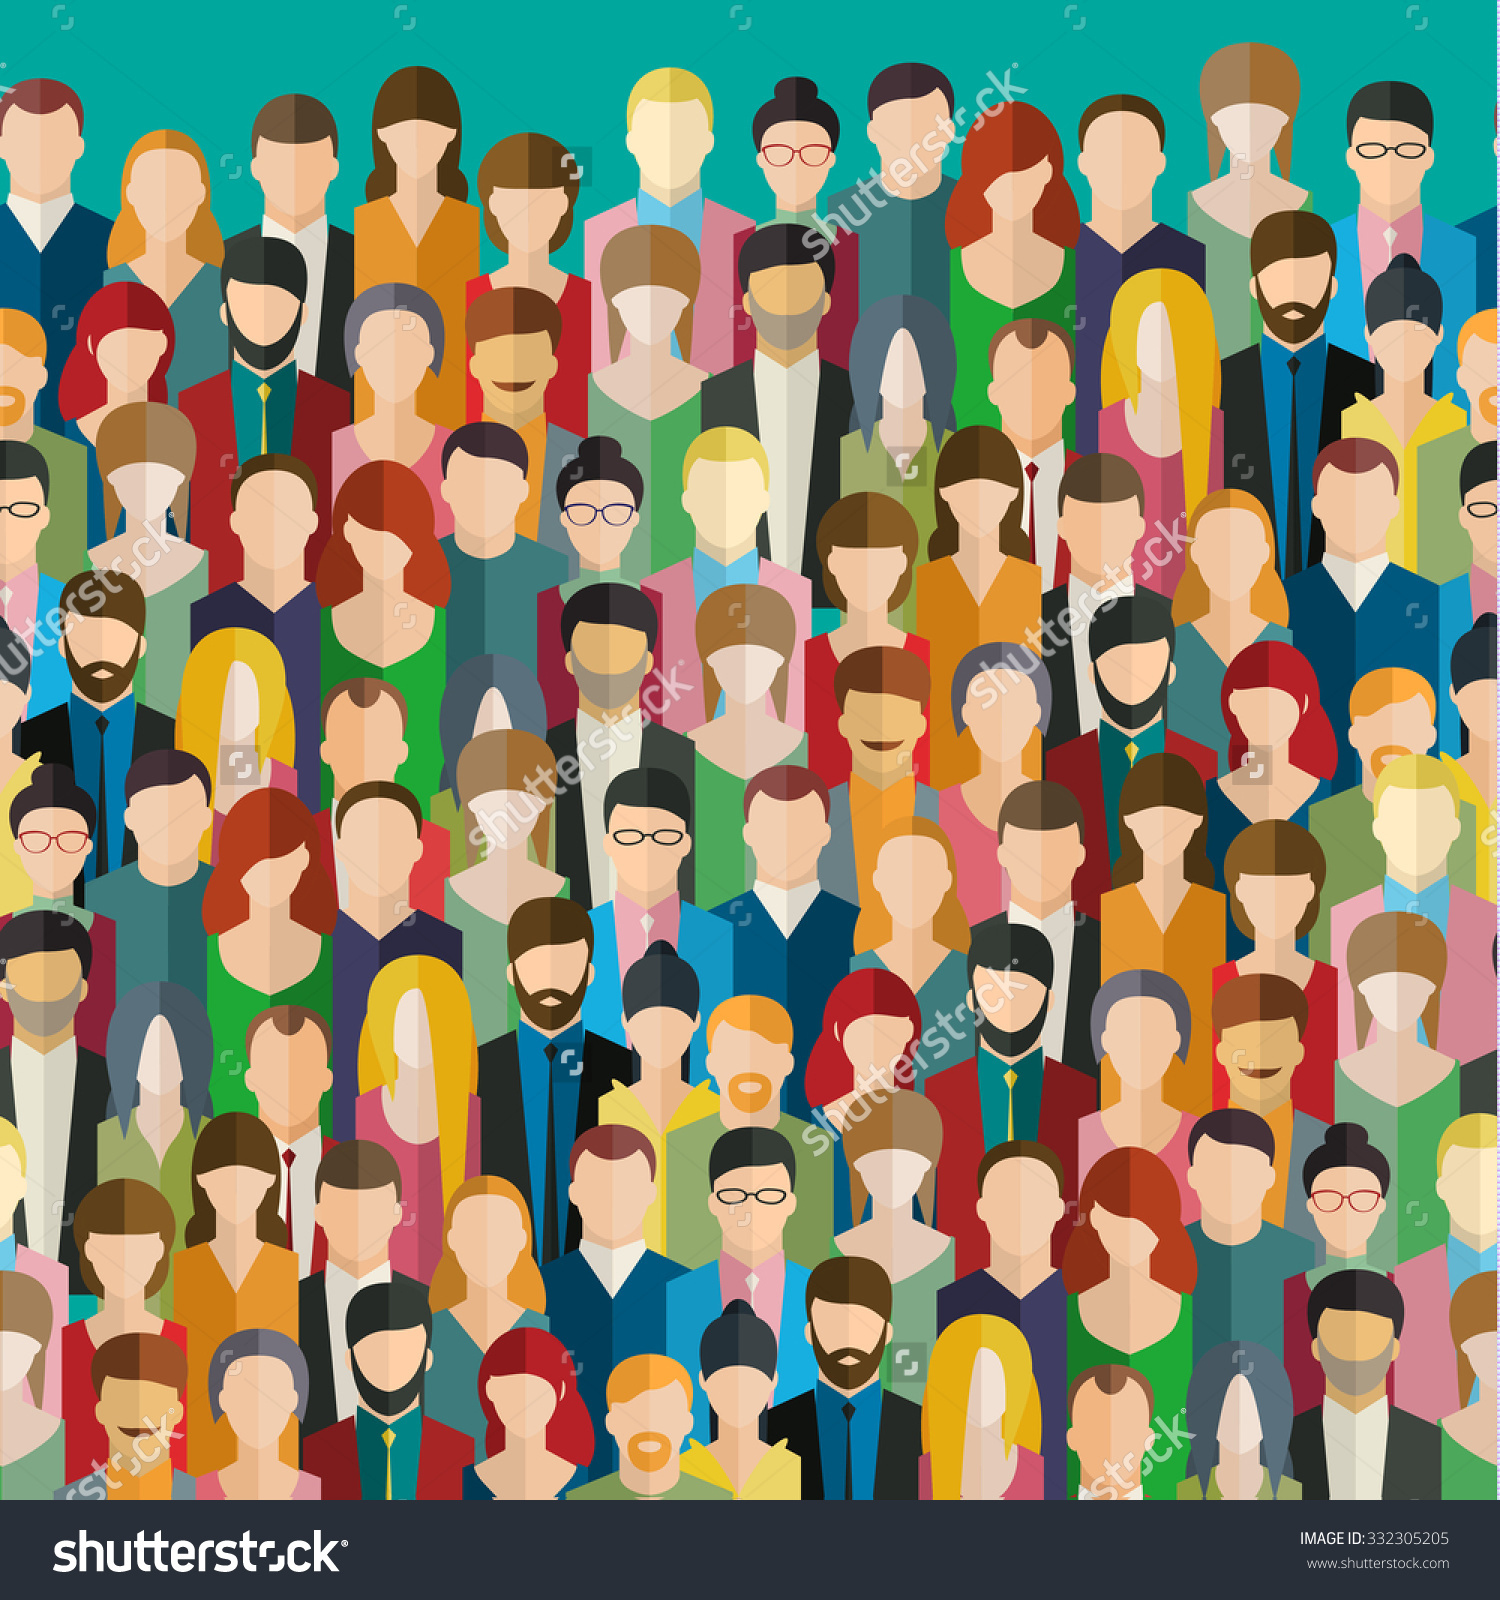 Overcrowding clipart svg download Public clipart crowded person - 142 transparent clip arts ... svg download